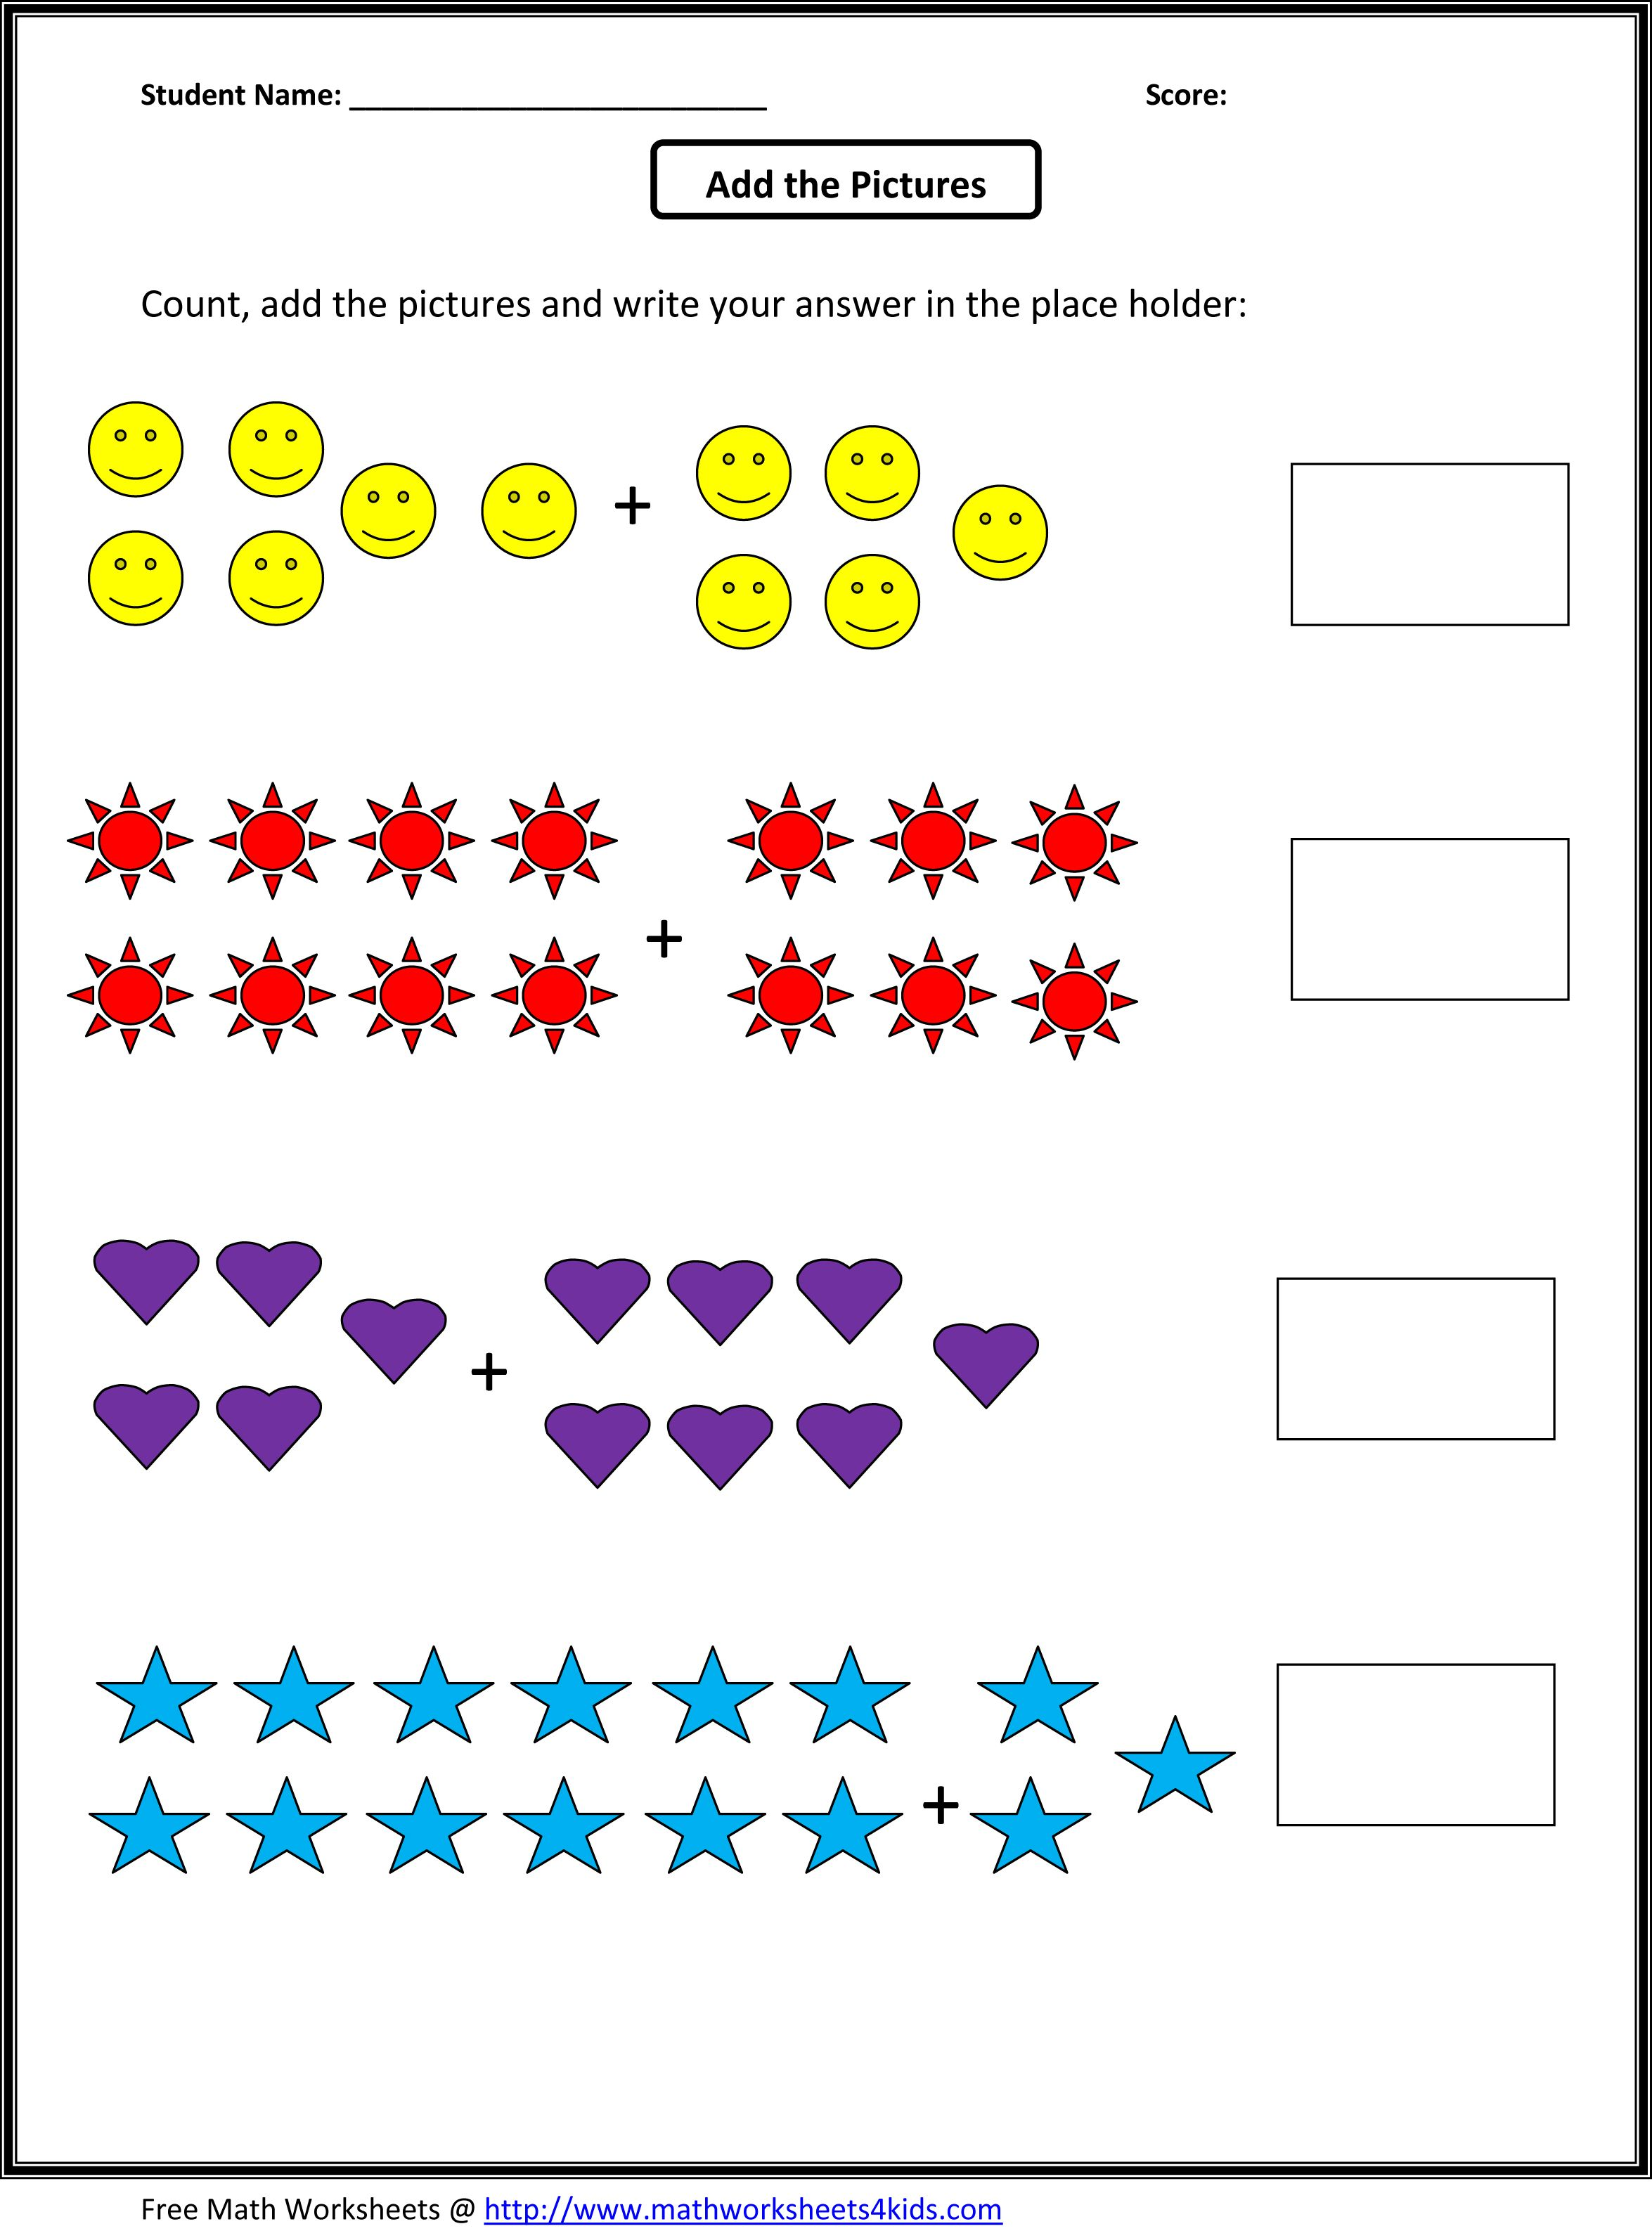 Aldiablosus  Nice Worksheet For Math Grade   Coffemix With Gorgeous  Images About School On Pinterest  Mental Maths Worksheets  With Extraordinary Dimes Nickels And Pennies Worksheet Also Boxcar Children Worksheets In Addition Persuade Inform Entertain Worksheets And Second Grade Map Skills Worksheets As Well As Climate And Weather Worksheets Additionally Base  Math Worksheets From Coffemixcom With Aldiablosus  Gorgeous Worksheet For Math Grade   Coffemix With Extraordinary  Images About School On Pinterest  Mental Maths Worksheets  And Nice Dimes Nickels And Pennies Worksheet Also Boxcar Children Worksheets In Addition Persuade Inform Entertain Worksheets From Coffemixcom